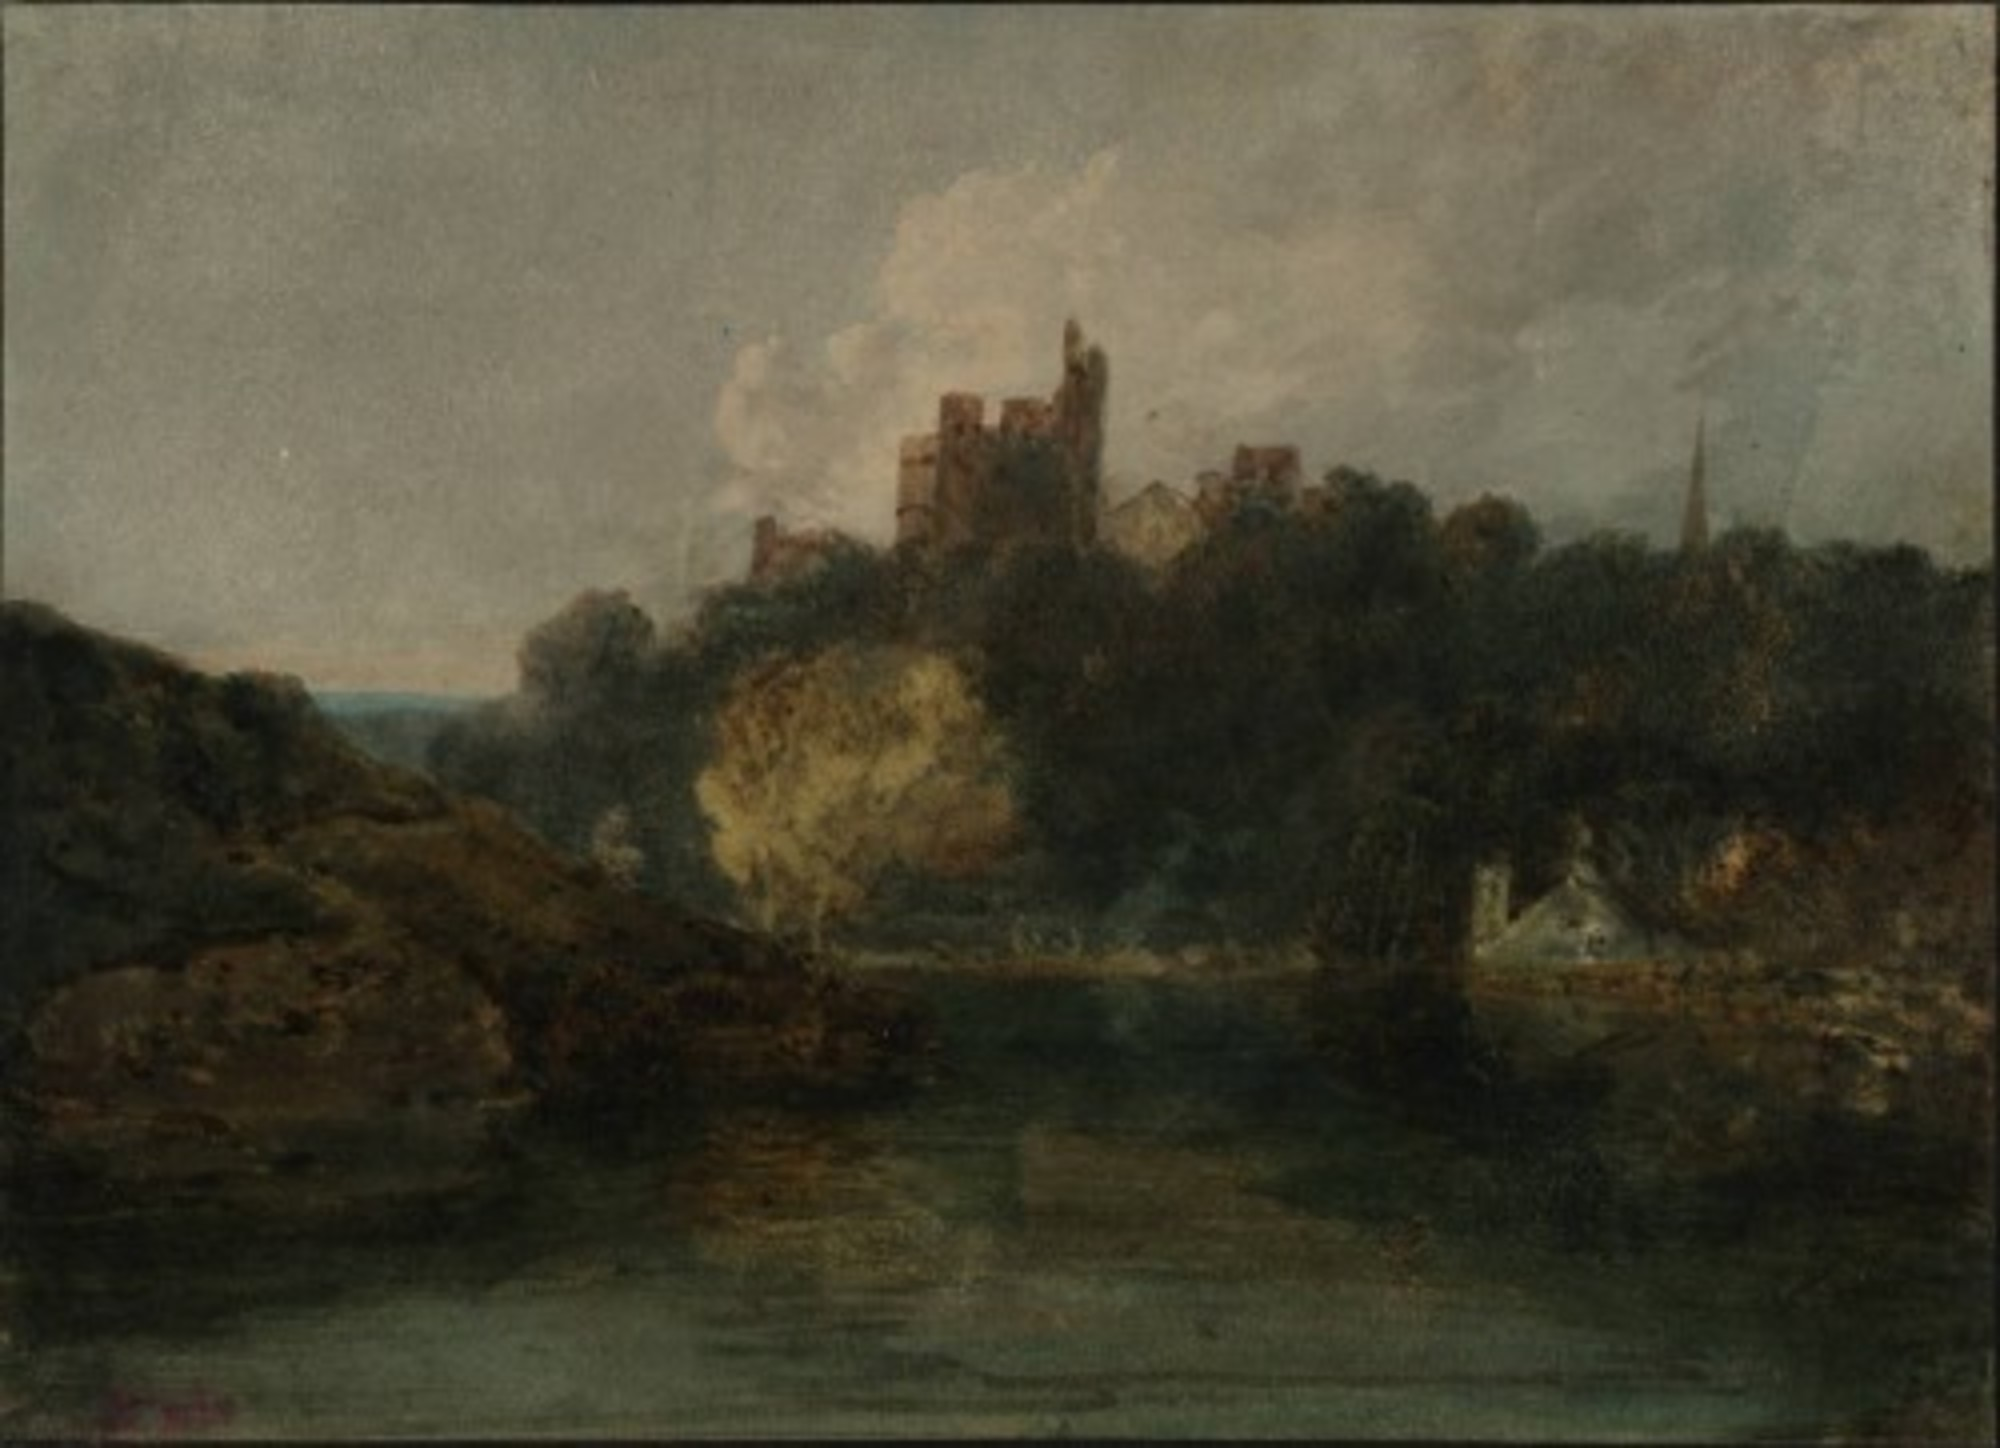 A-Castle-on-a-Wooded-Bank-beside-a-River-A-Church-Spire-to-the-Right-1798-99.jpg